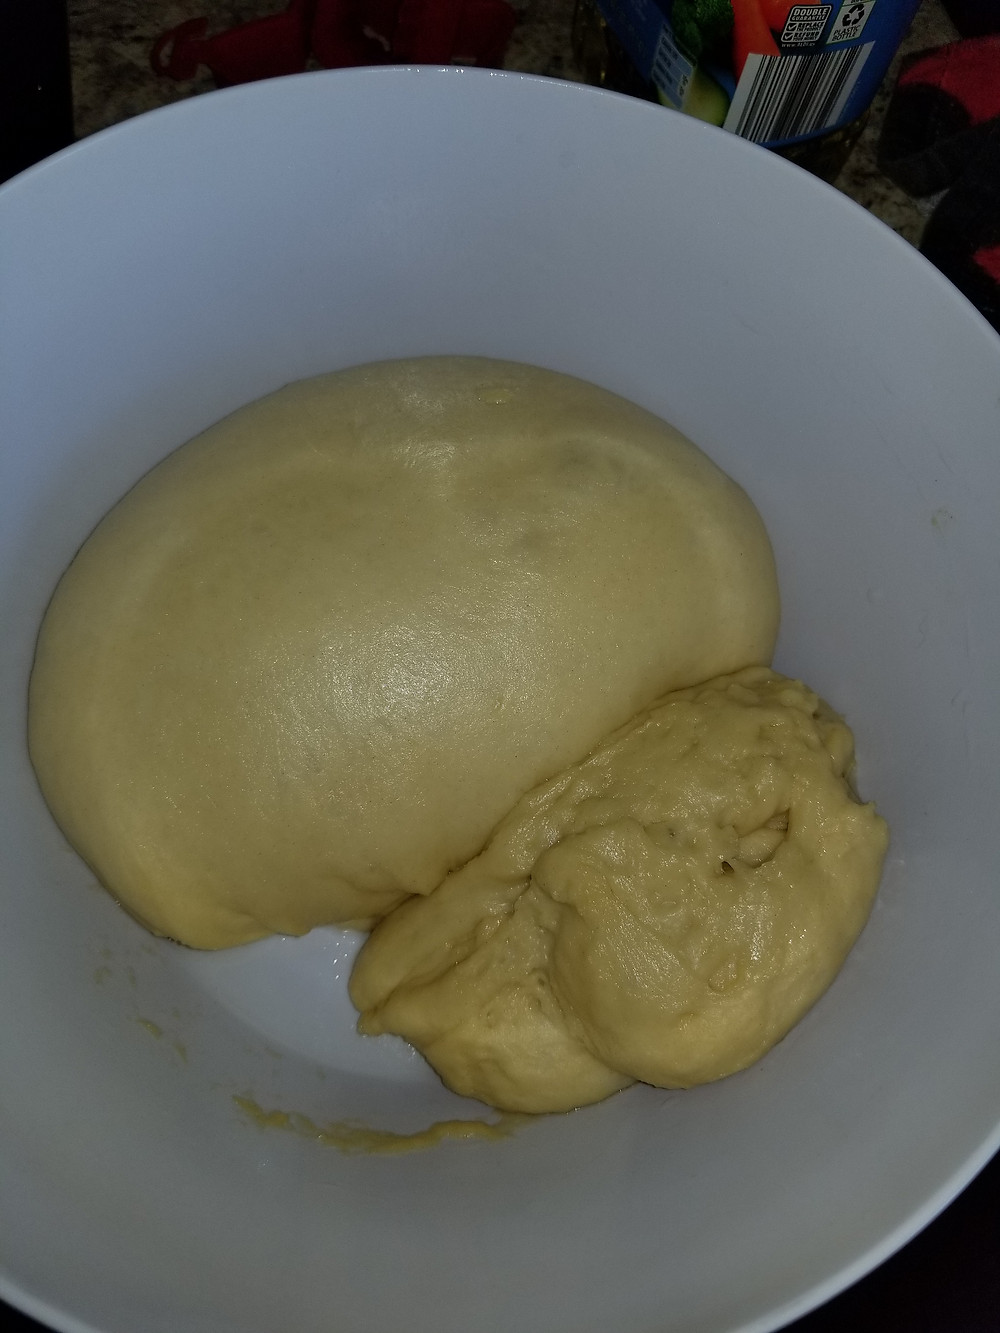 white inside of a bowl with dough on the inside that has risen for 1 hour.